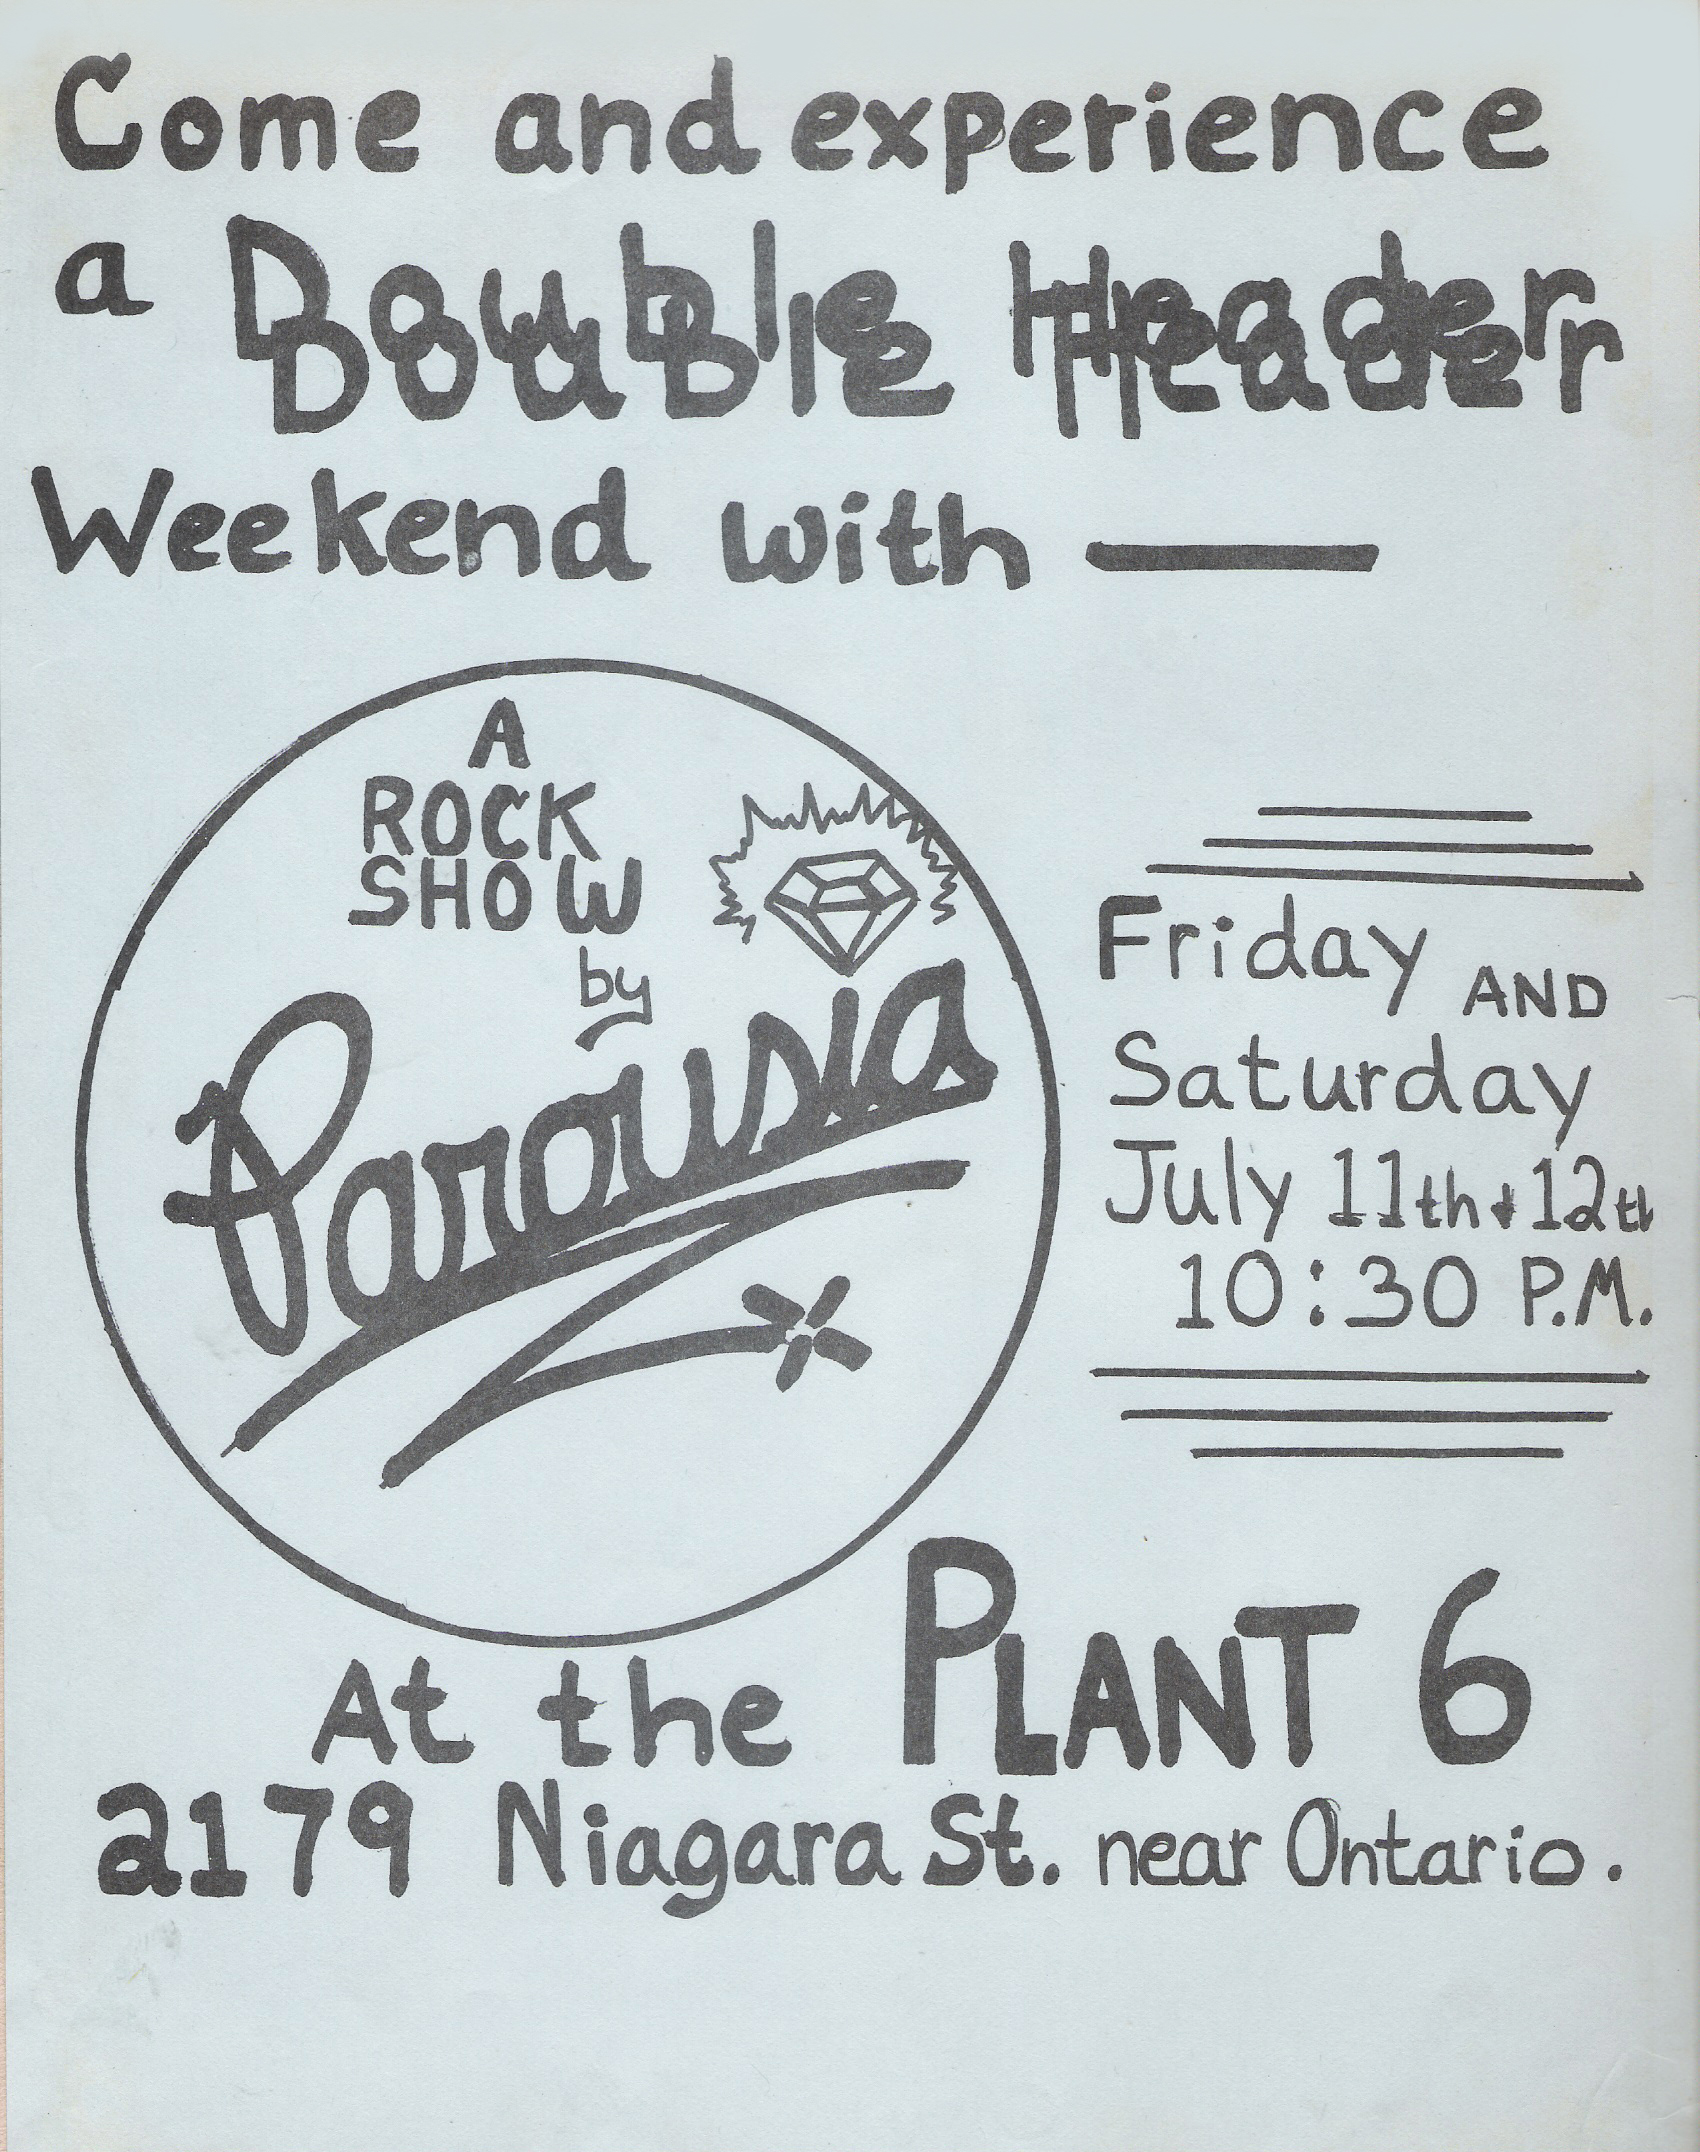 Parousia Flyer - Plant 6, (Niagara Street) July 11th & 12th 1980